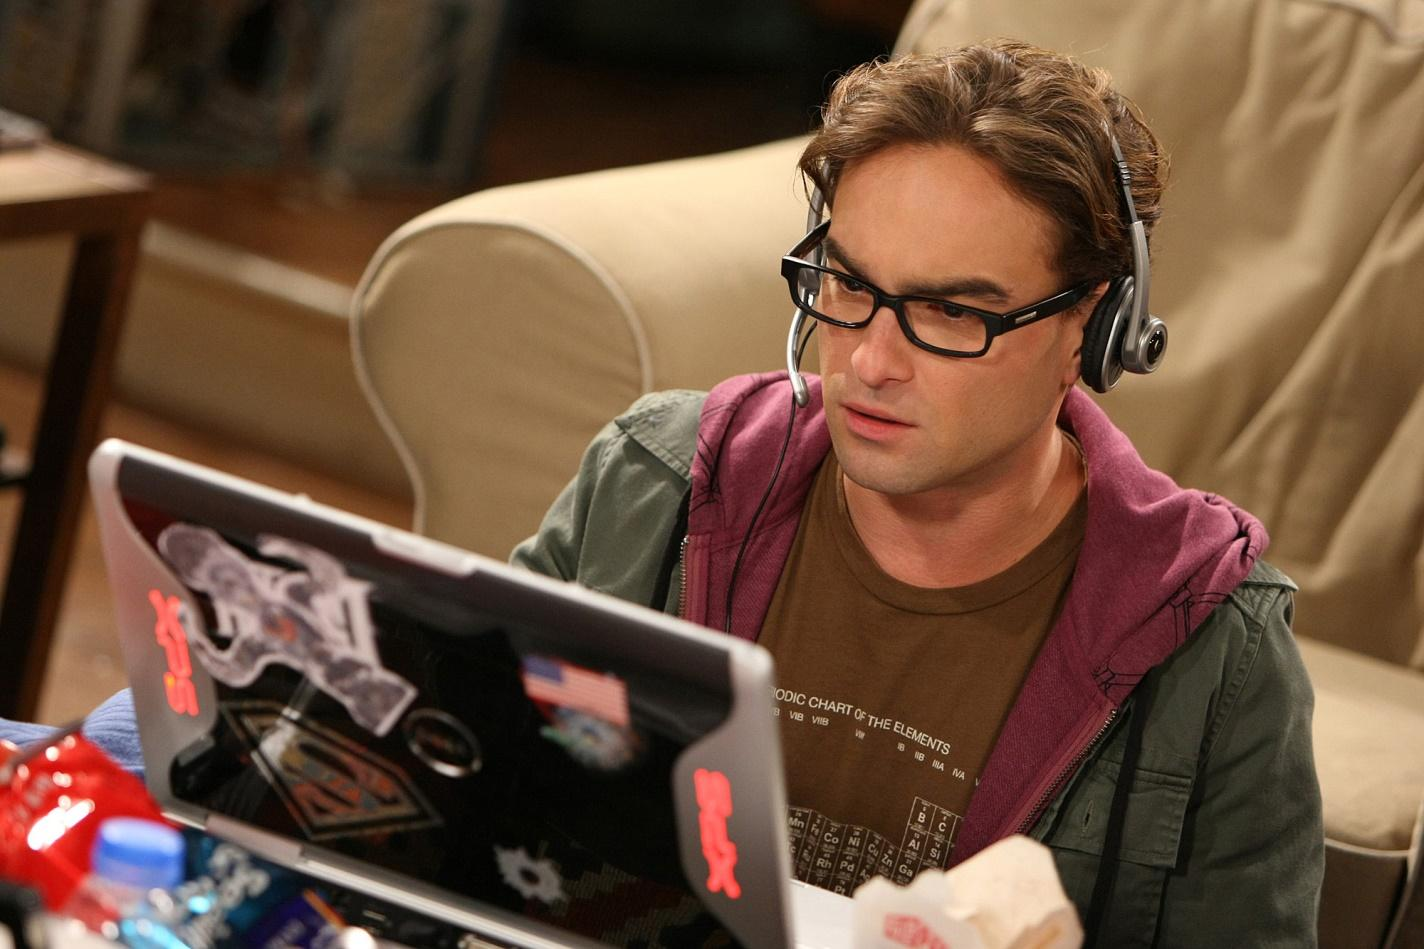 http://g3ar.co.za/wp-content/uploads/2013/08/Big-Bang-Theory-Leaonard.jpg